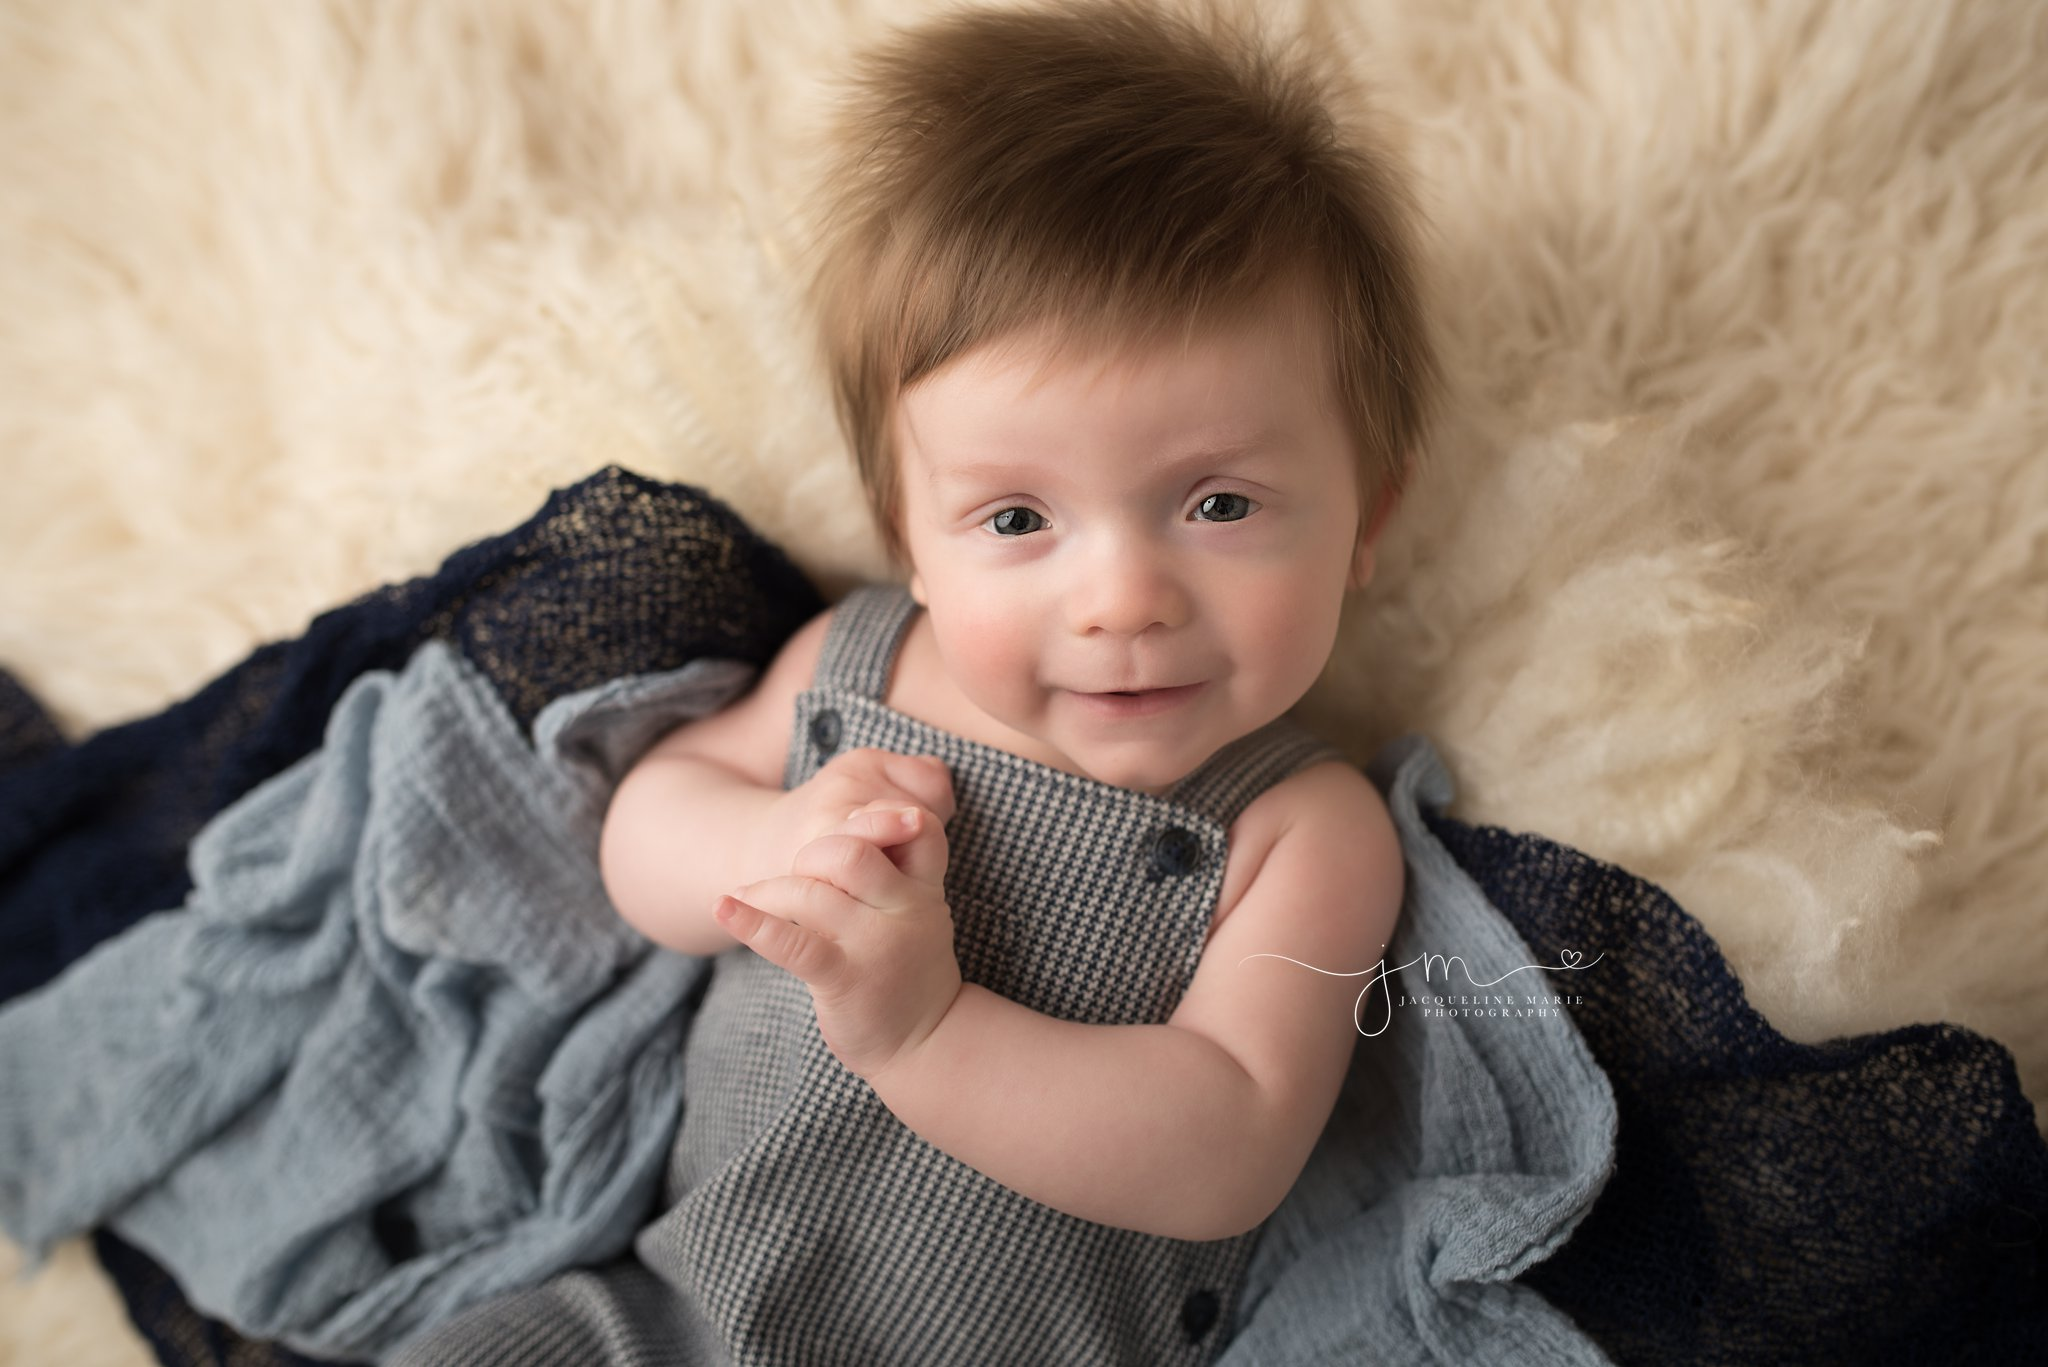 columbus ohio three month old baby boy wears navy blue romper from janie and jack for milestone photography session